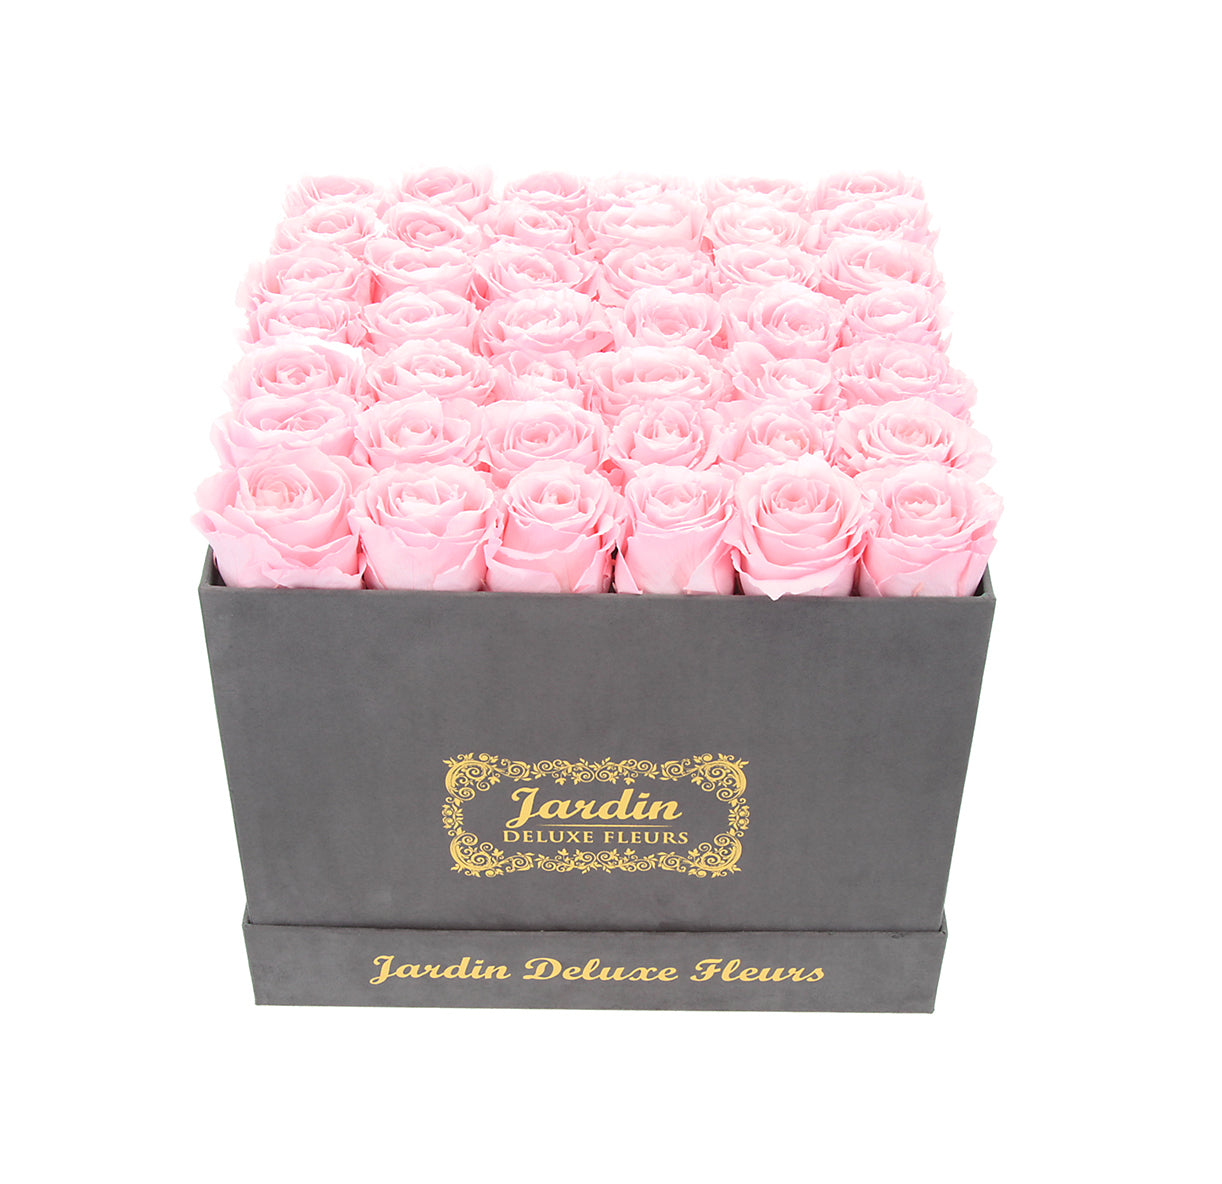 Jardin Deluxe Fleurs - Parisian Inspired Real Roses that last a Year ...